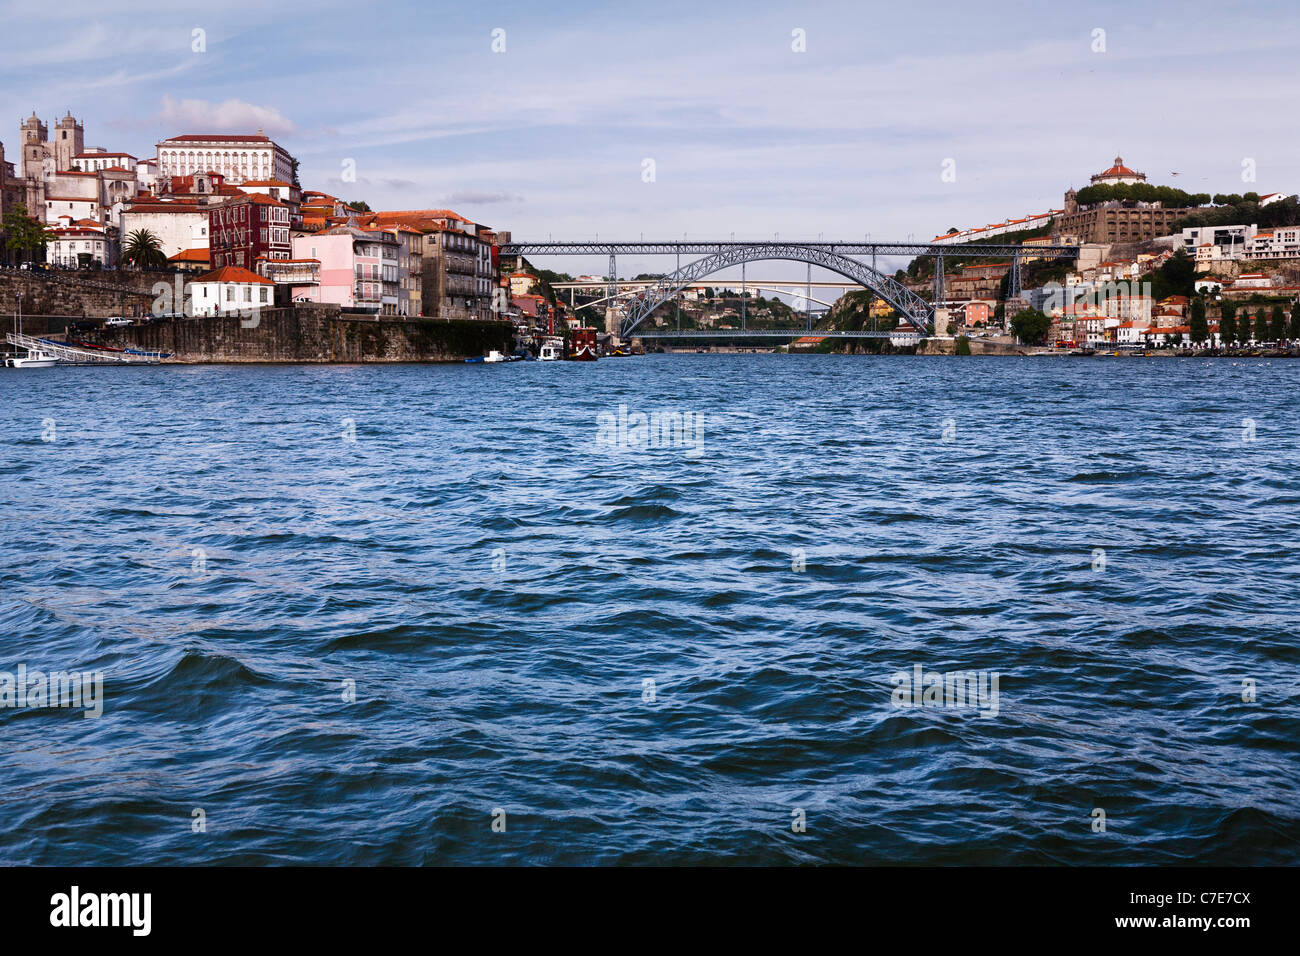 Ponte Dom Luis, bridge built by Gustave Eiffel in Porto, River Douro - Stock Image